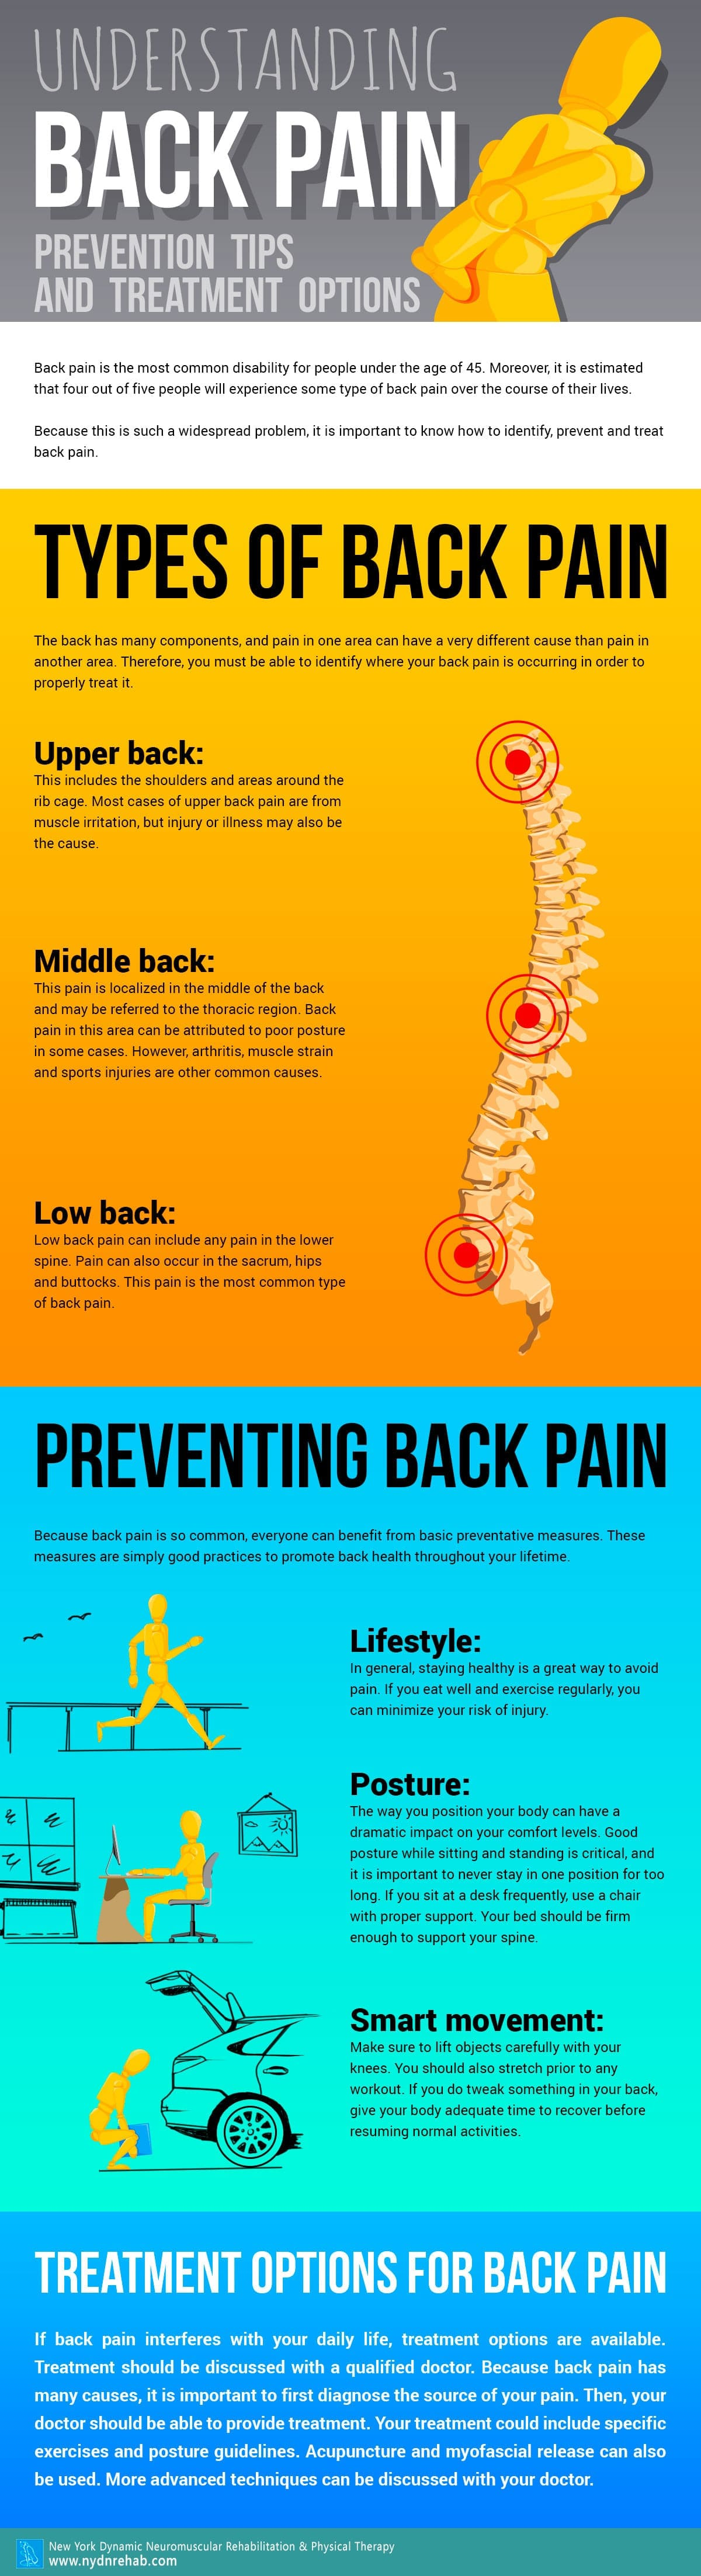 Understanding Back Pain Prevention Tips and Treatment Options Blog